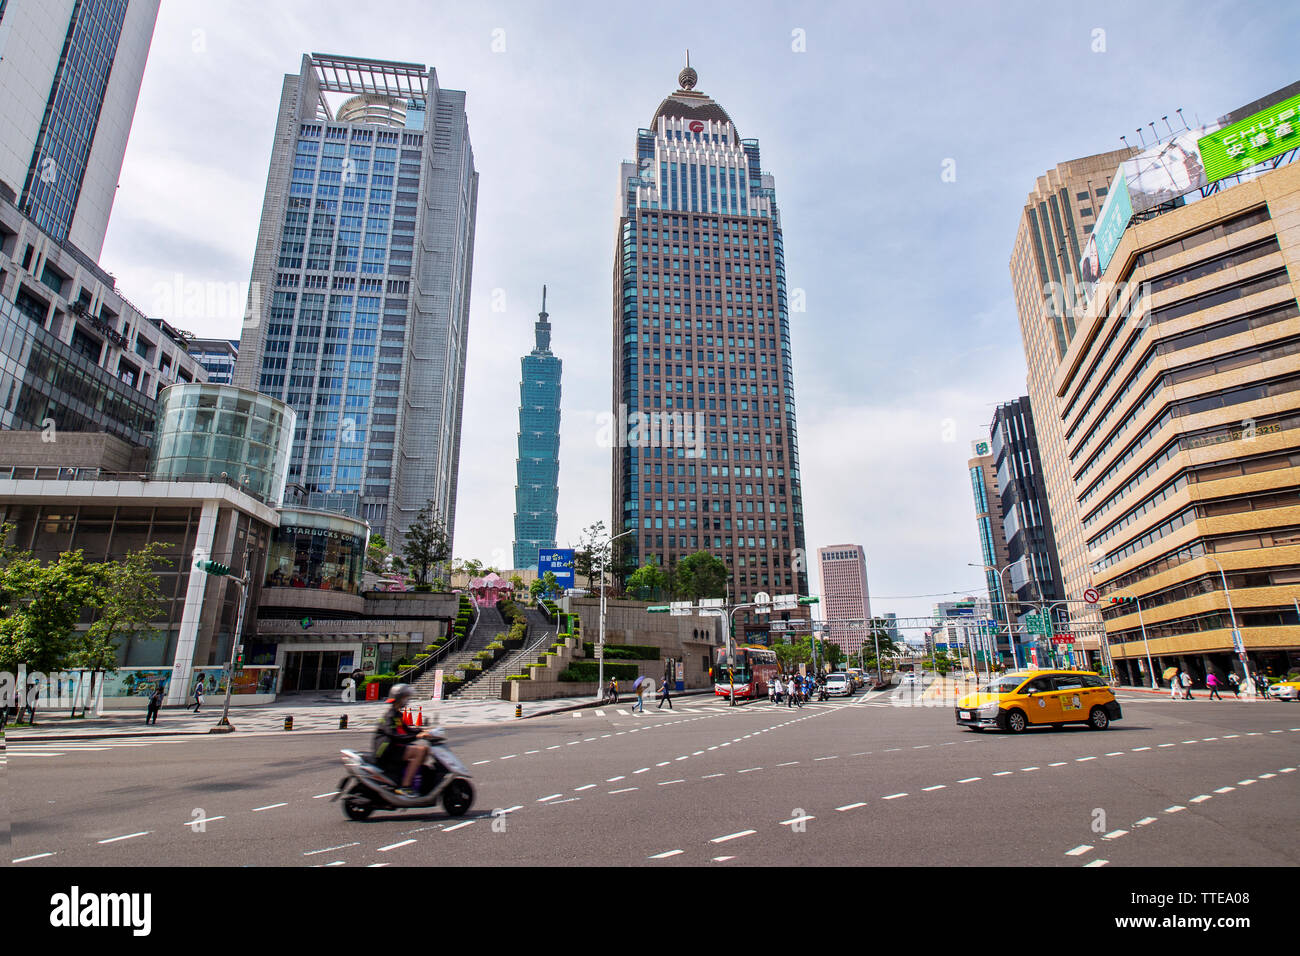 TAIPEI, TAIWAN. 5-5-2019 - skyline and cityscape of downtown Xinyi district Business area of with modern high rise building and the Taipei 101 buildin - Stock Image